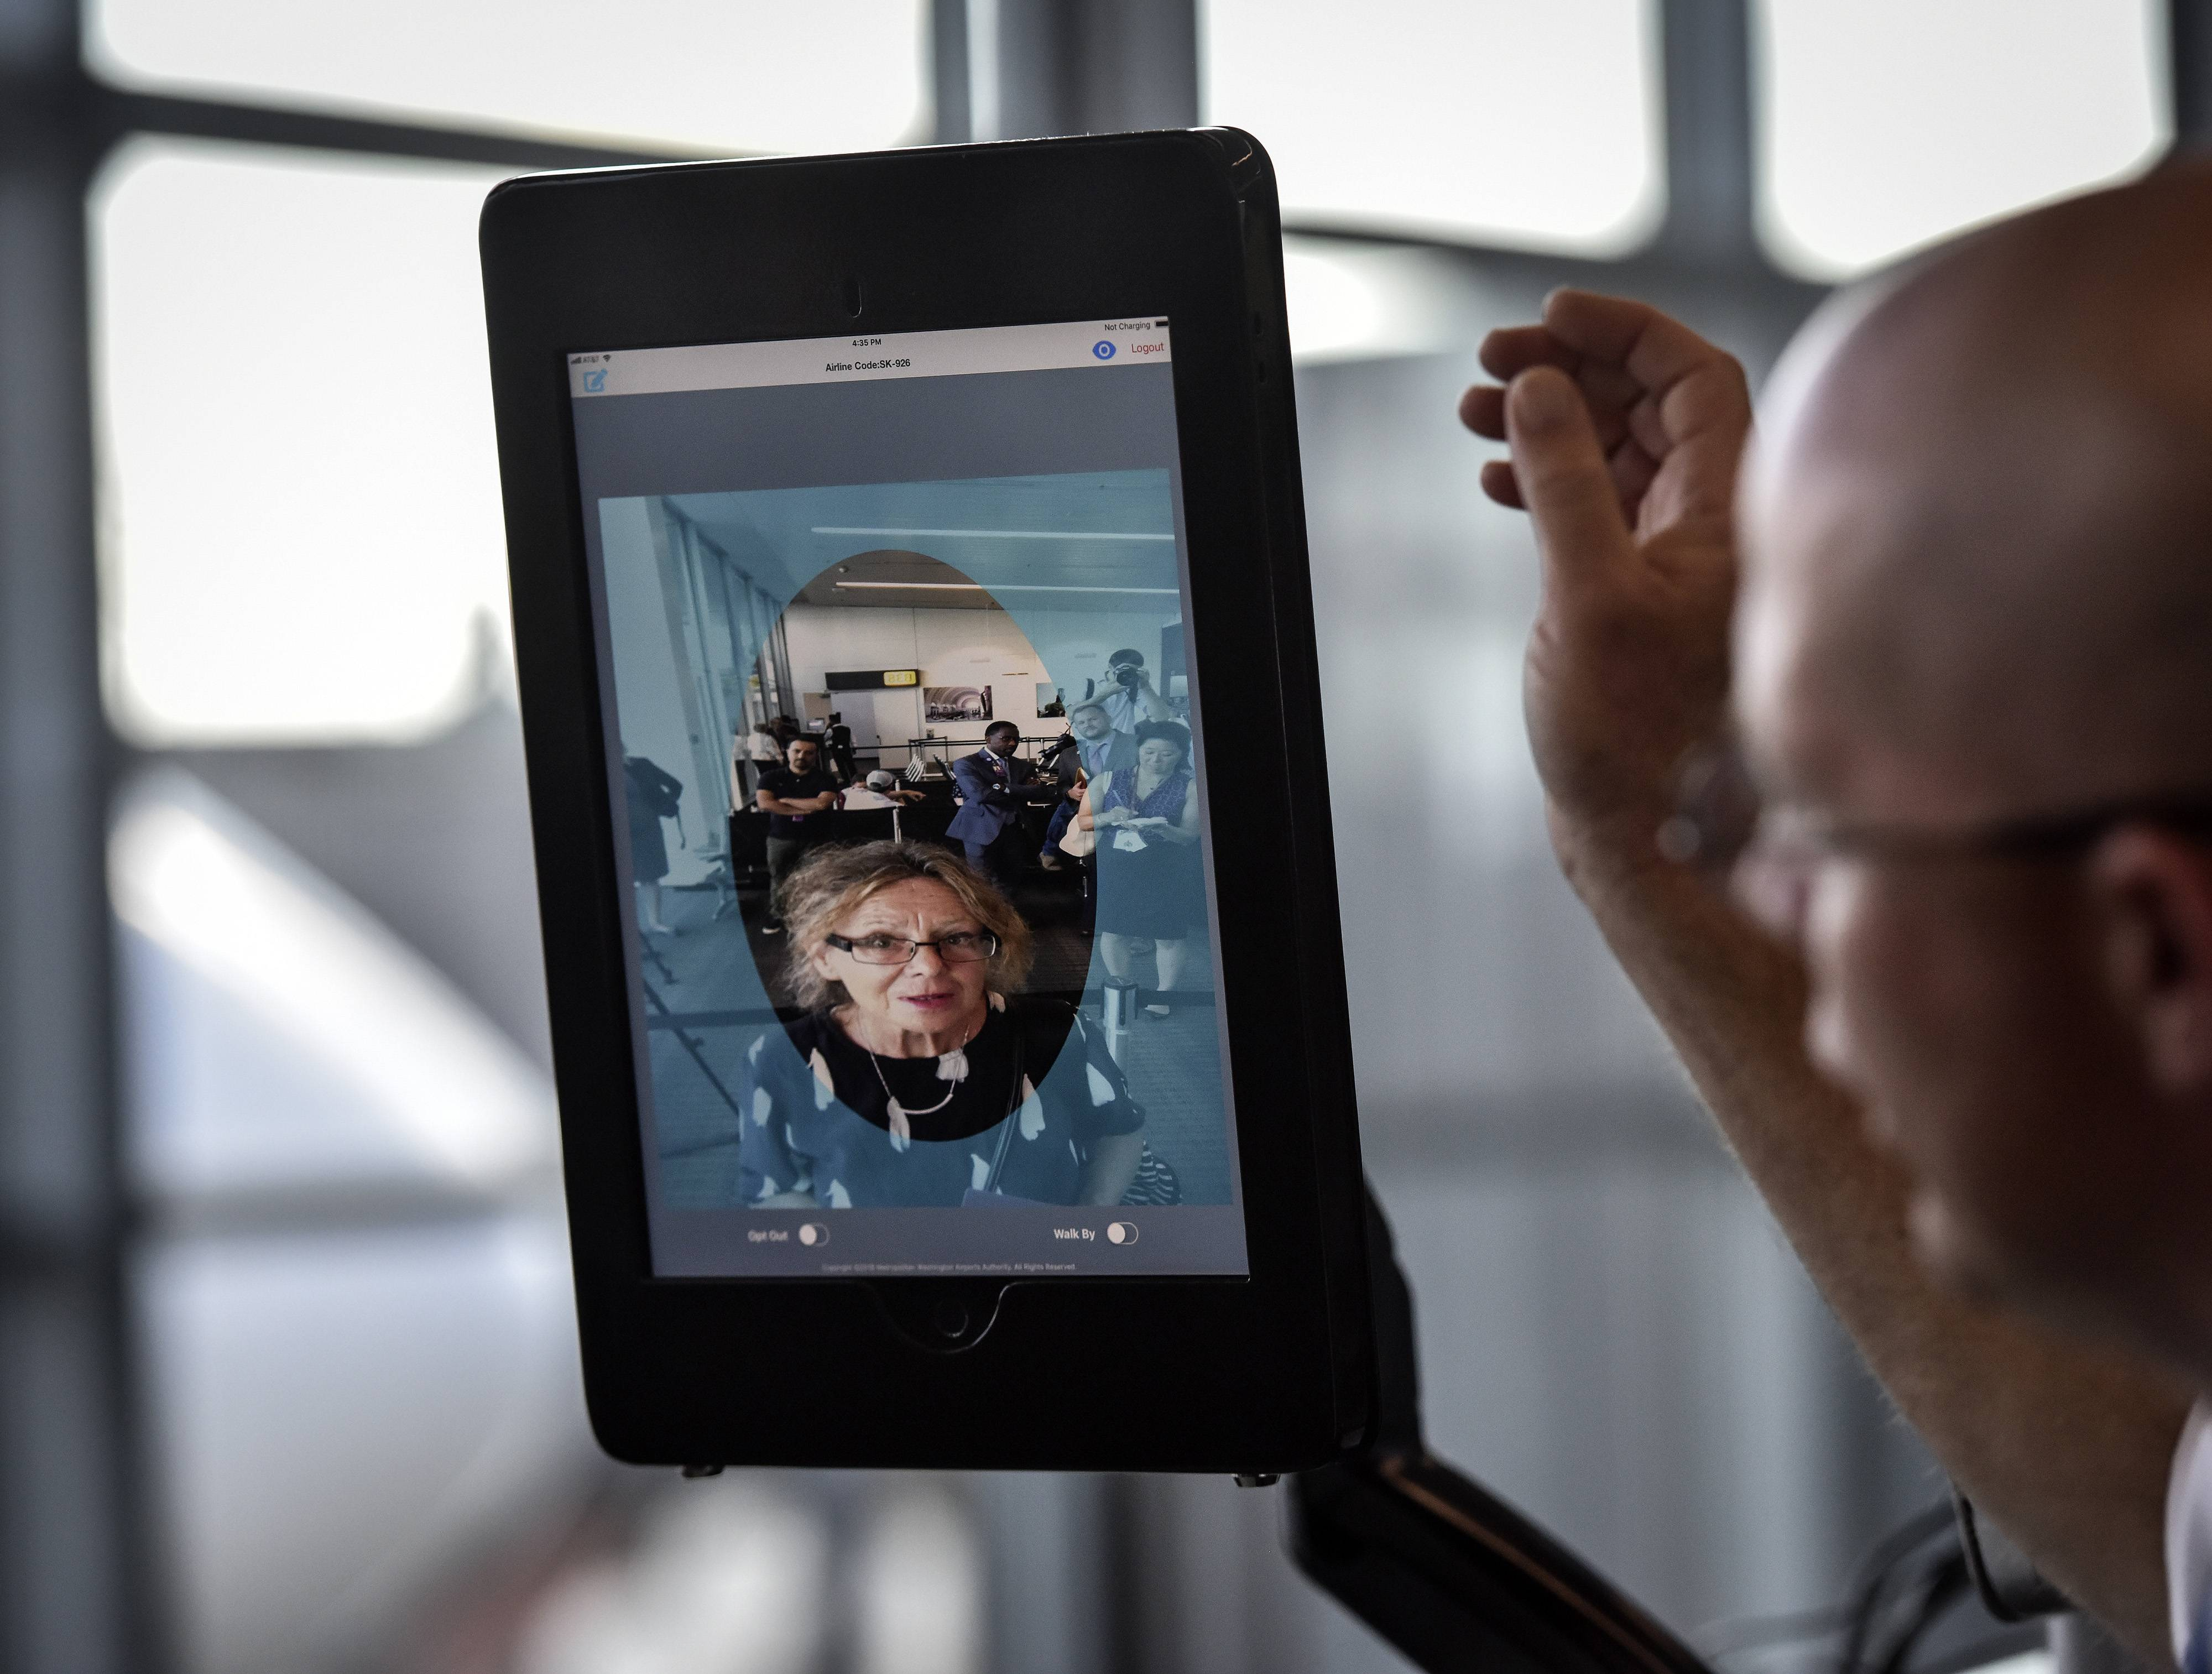 Mixed reviews on facial recognition scans of travelers